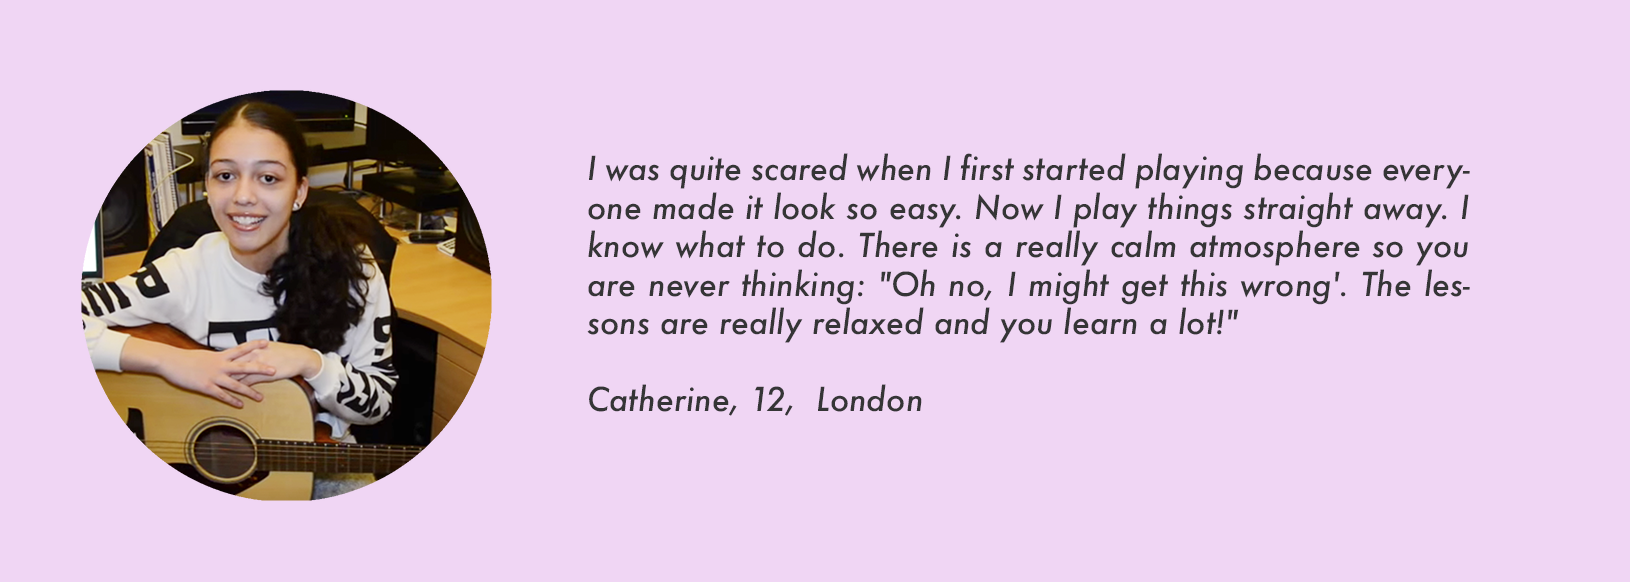 Catherine testimonial.png